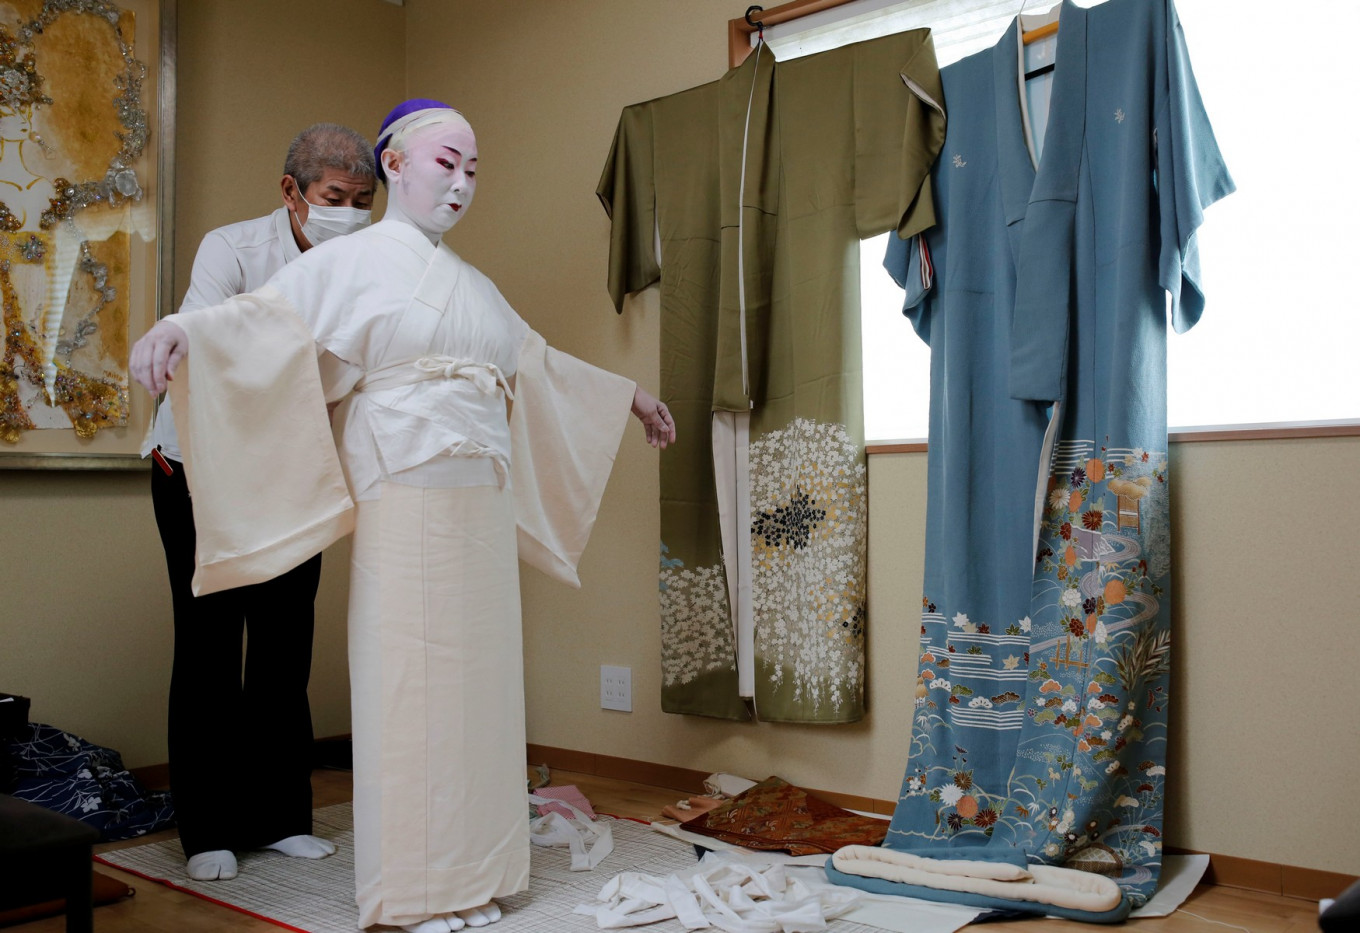 Shoichi Sanagashi, a kimono dresser, wears a protective face mask as he dresses Tokijyo Hanasaki, a jiutamai dancer, before Hanasaki is recorded dancing for a film supported by the Tokyo Metropolitan government in order to support artists during the coronavirus disease (COVID-19) outbreak, at a studio in Tokyo, Japan, June 29, 2020. Reuters/Kim Kyung-Hoon